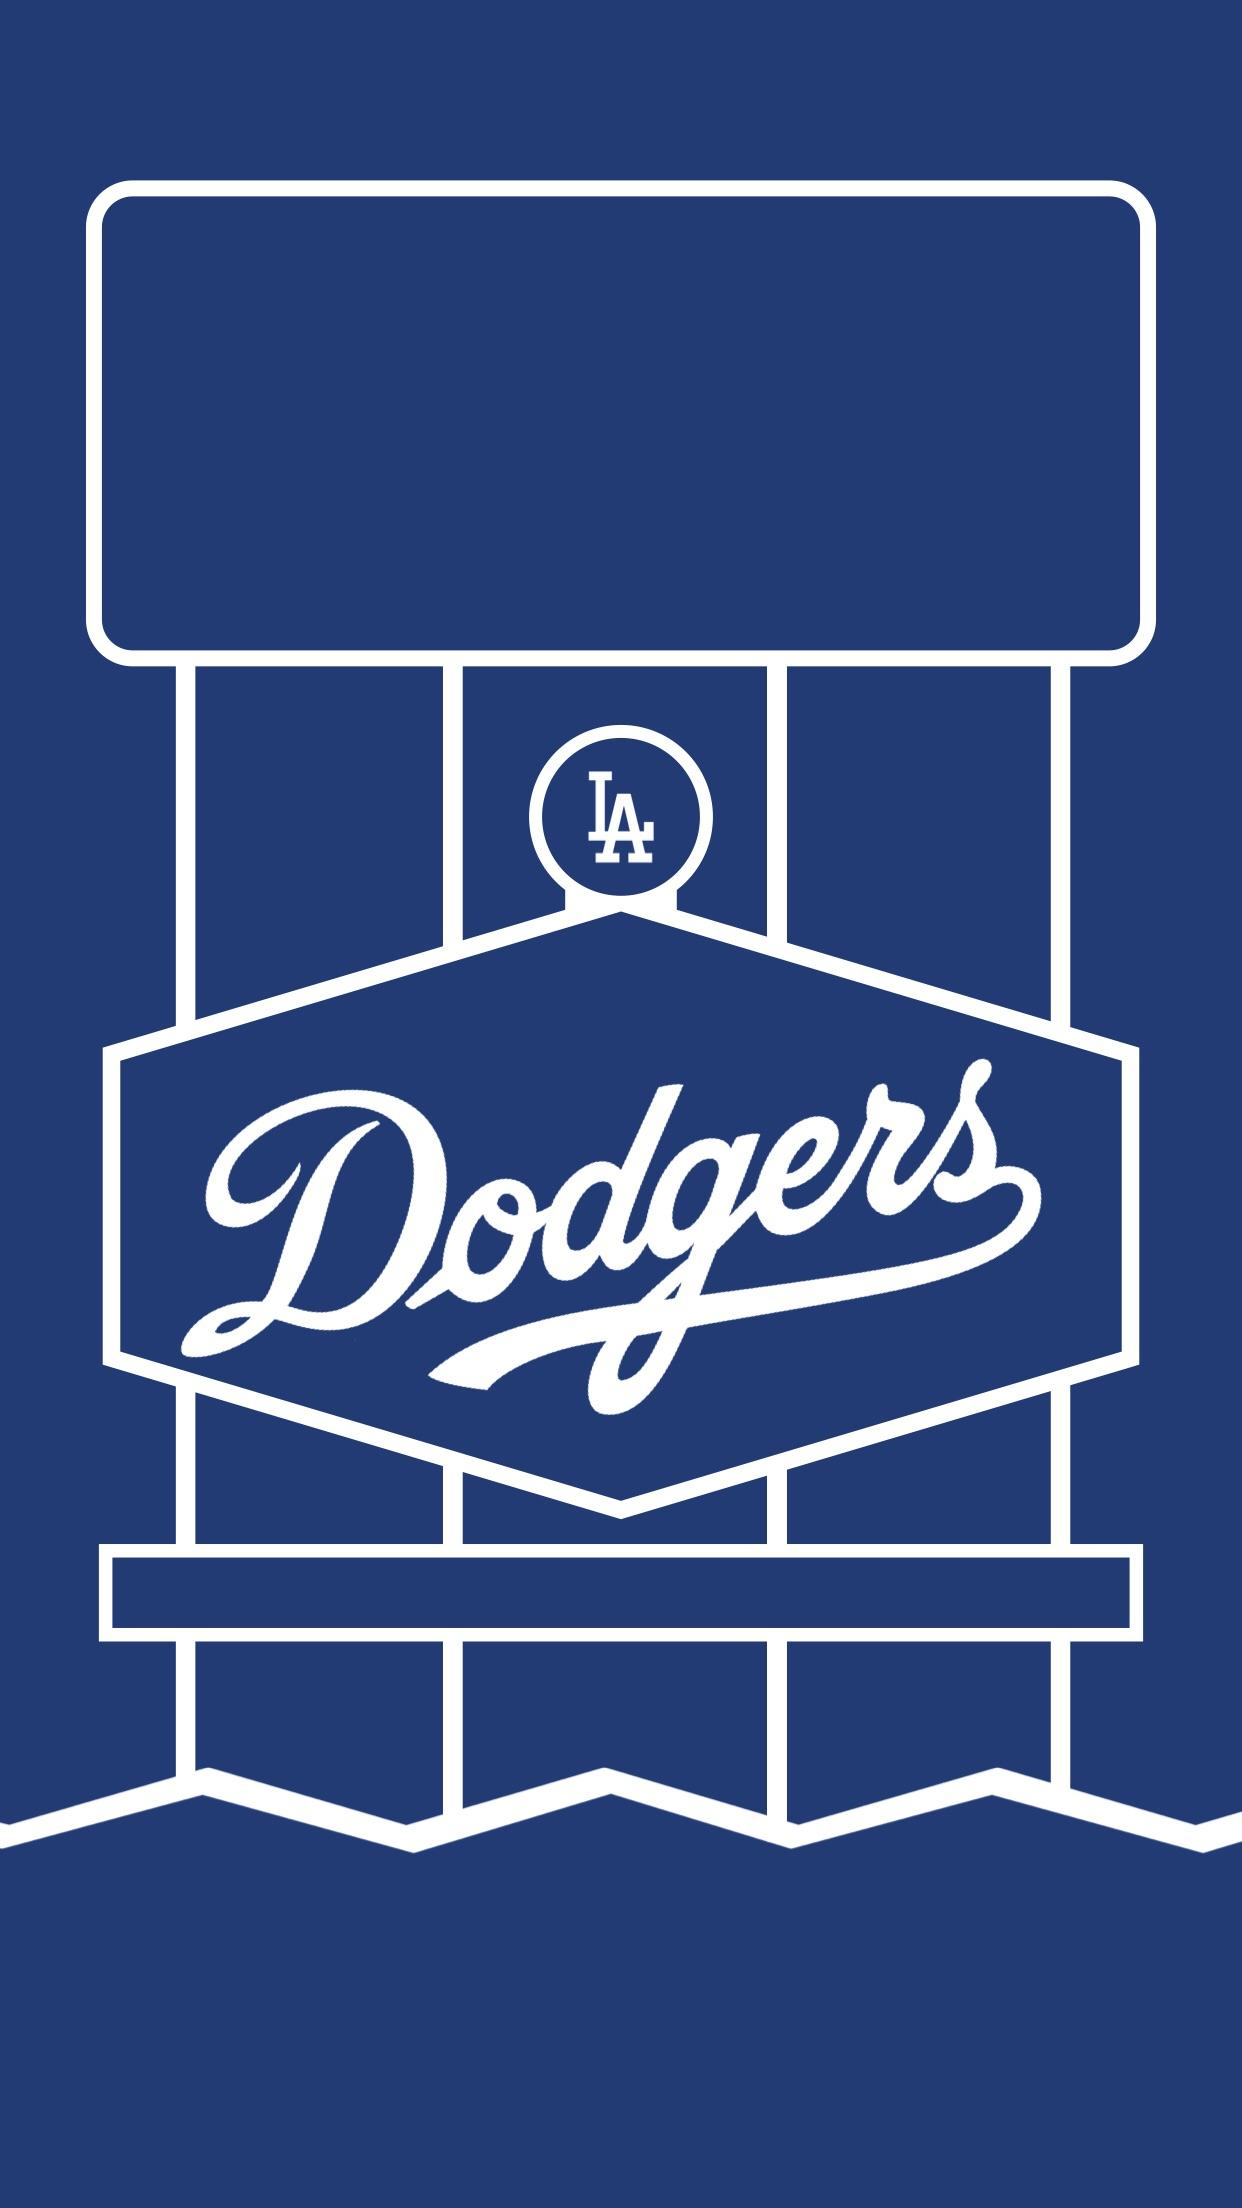 La Dodgers Wallpaper For Iphone Posted By Sarah Sellers